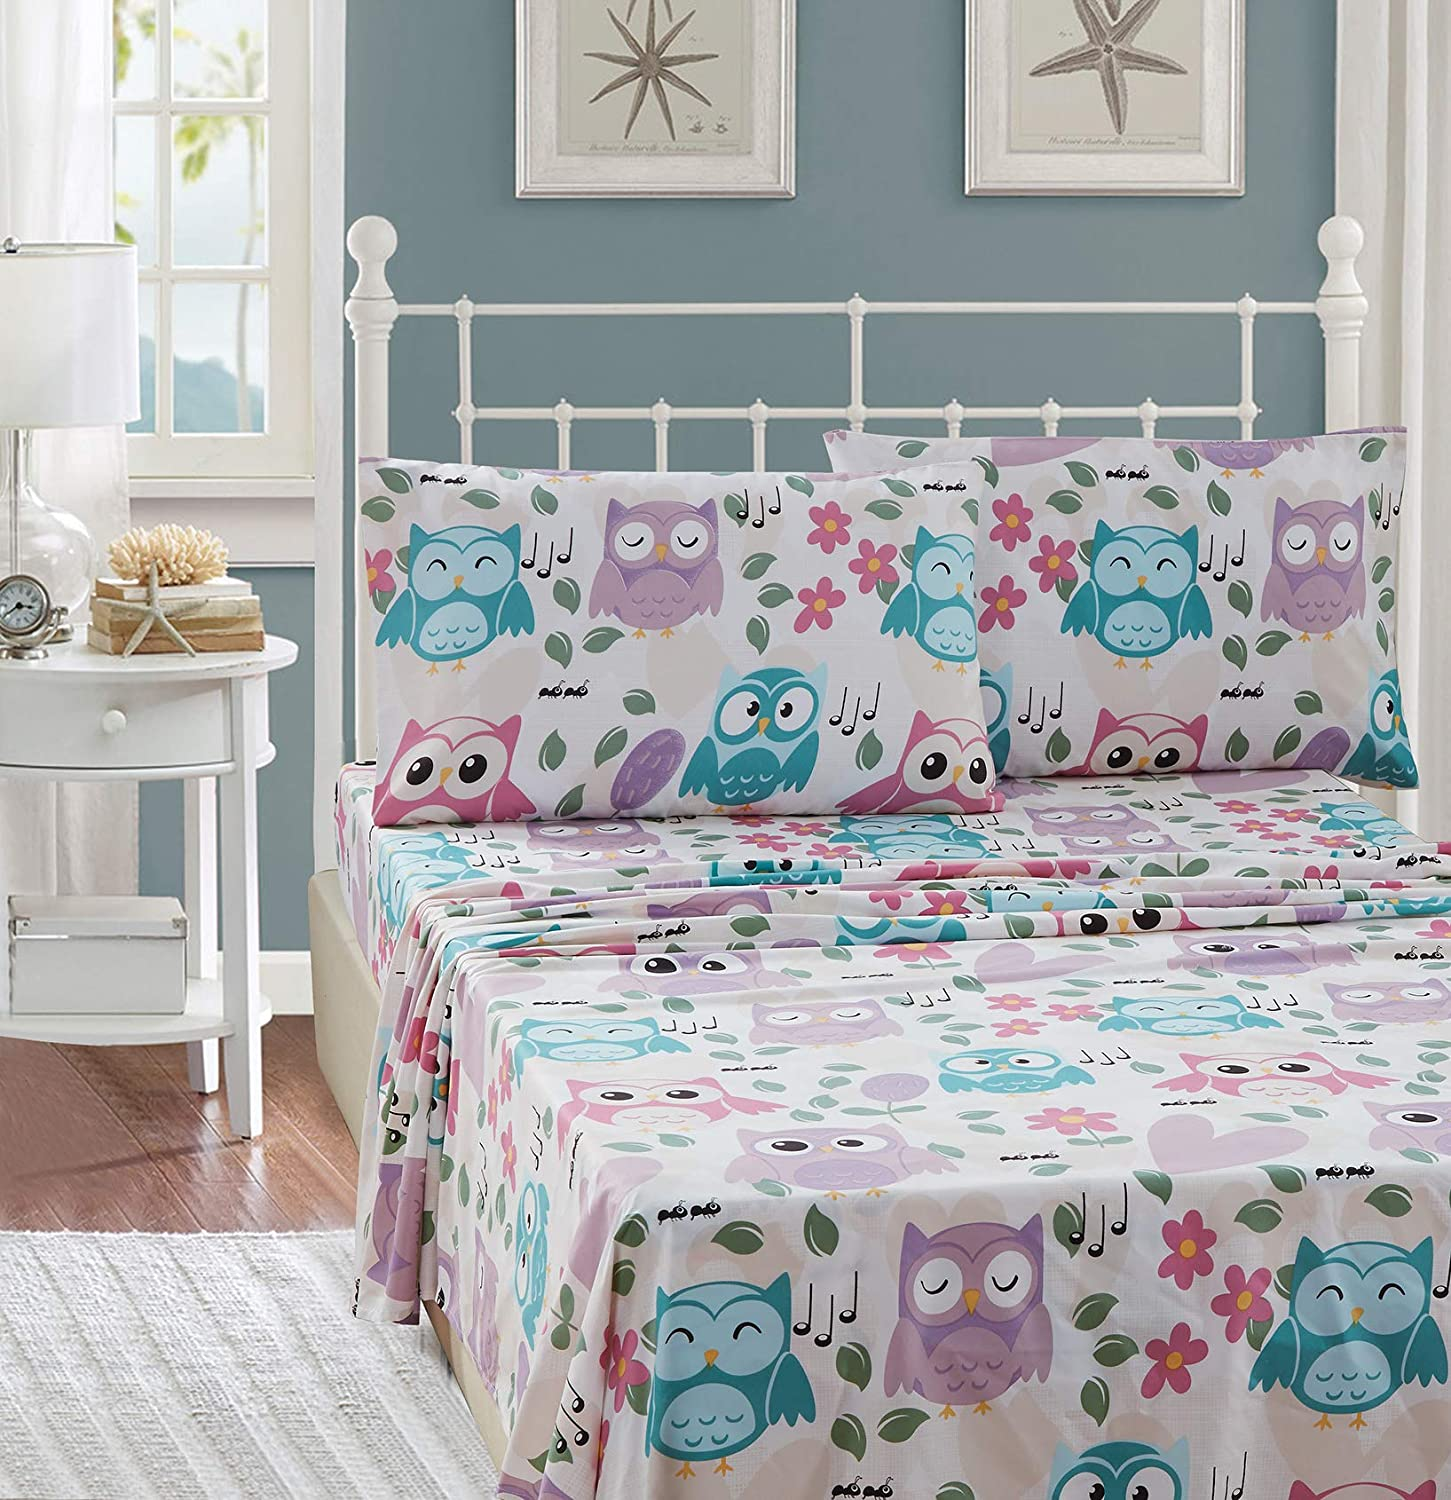 Kids Zone 4 Piece Queen Sheet Set for Girls/Teens Multi-Color Owls Qua Purple Pink Singing Owl Hearts Flower Leaves New